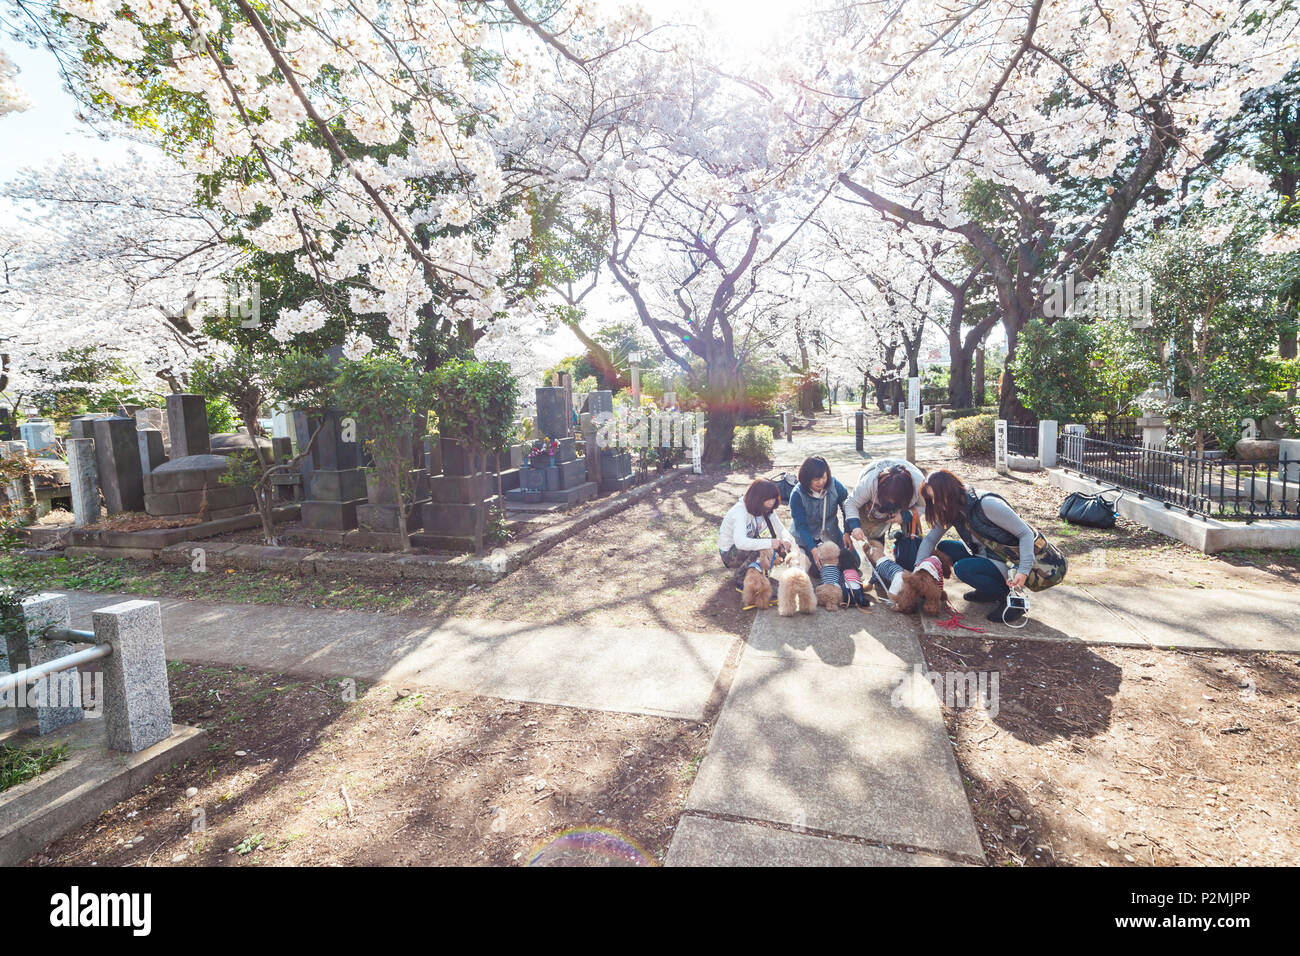 Women with dressed cute small dogs under cherry blossoms at Aoyama Cemetery, Roppongi, Tokyo, Japan - Stock Image